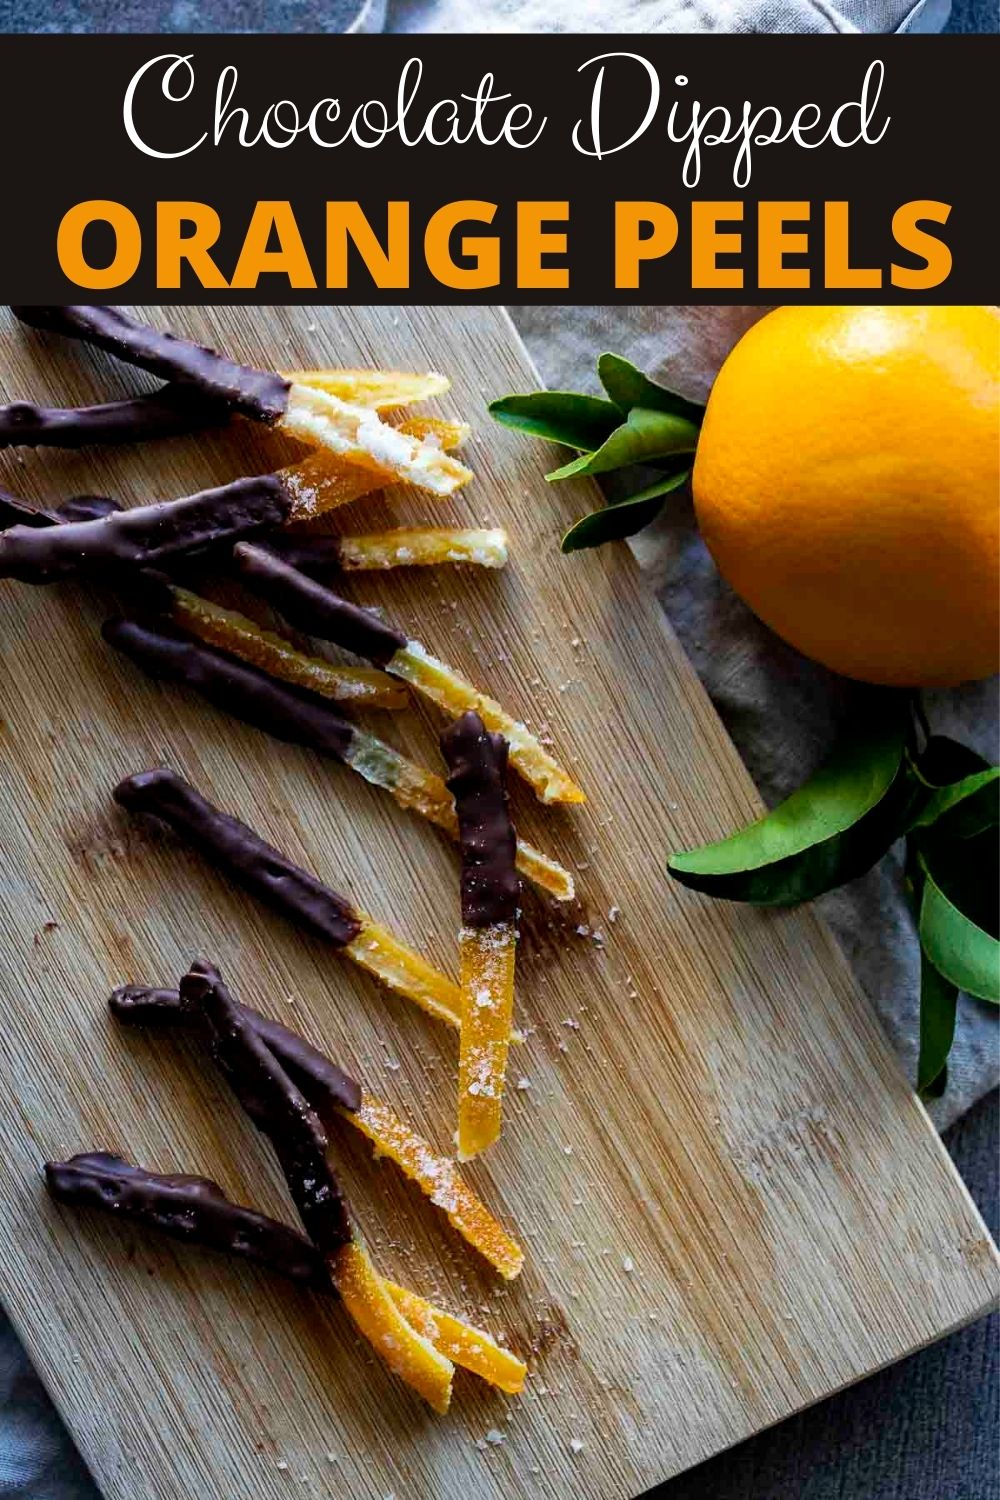 Chocolate Covered Candied Orange Peel Recipe